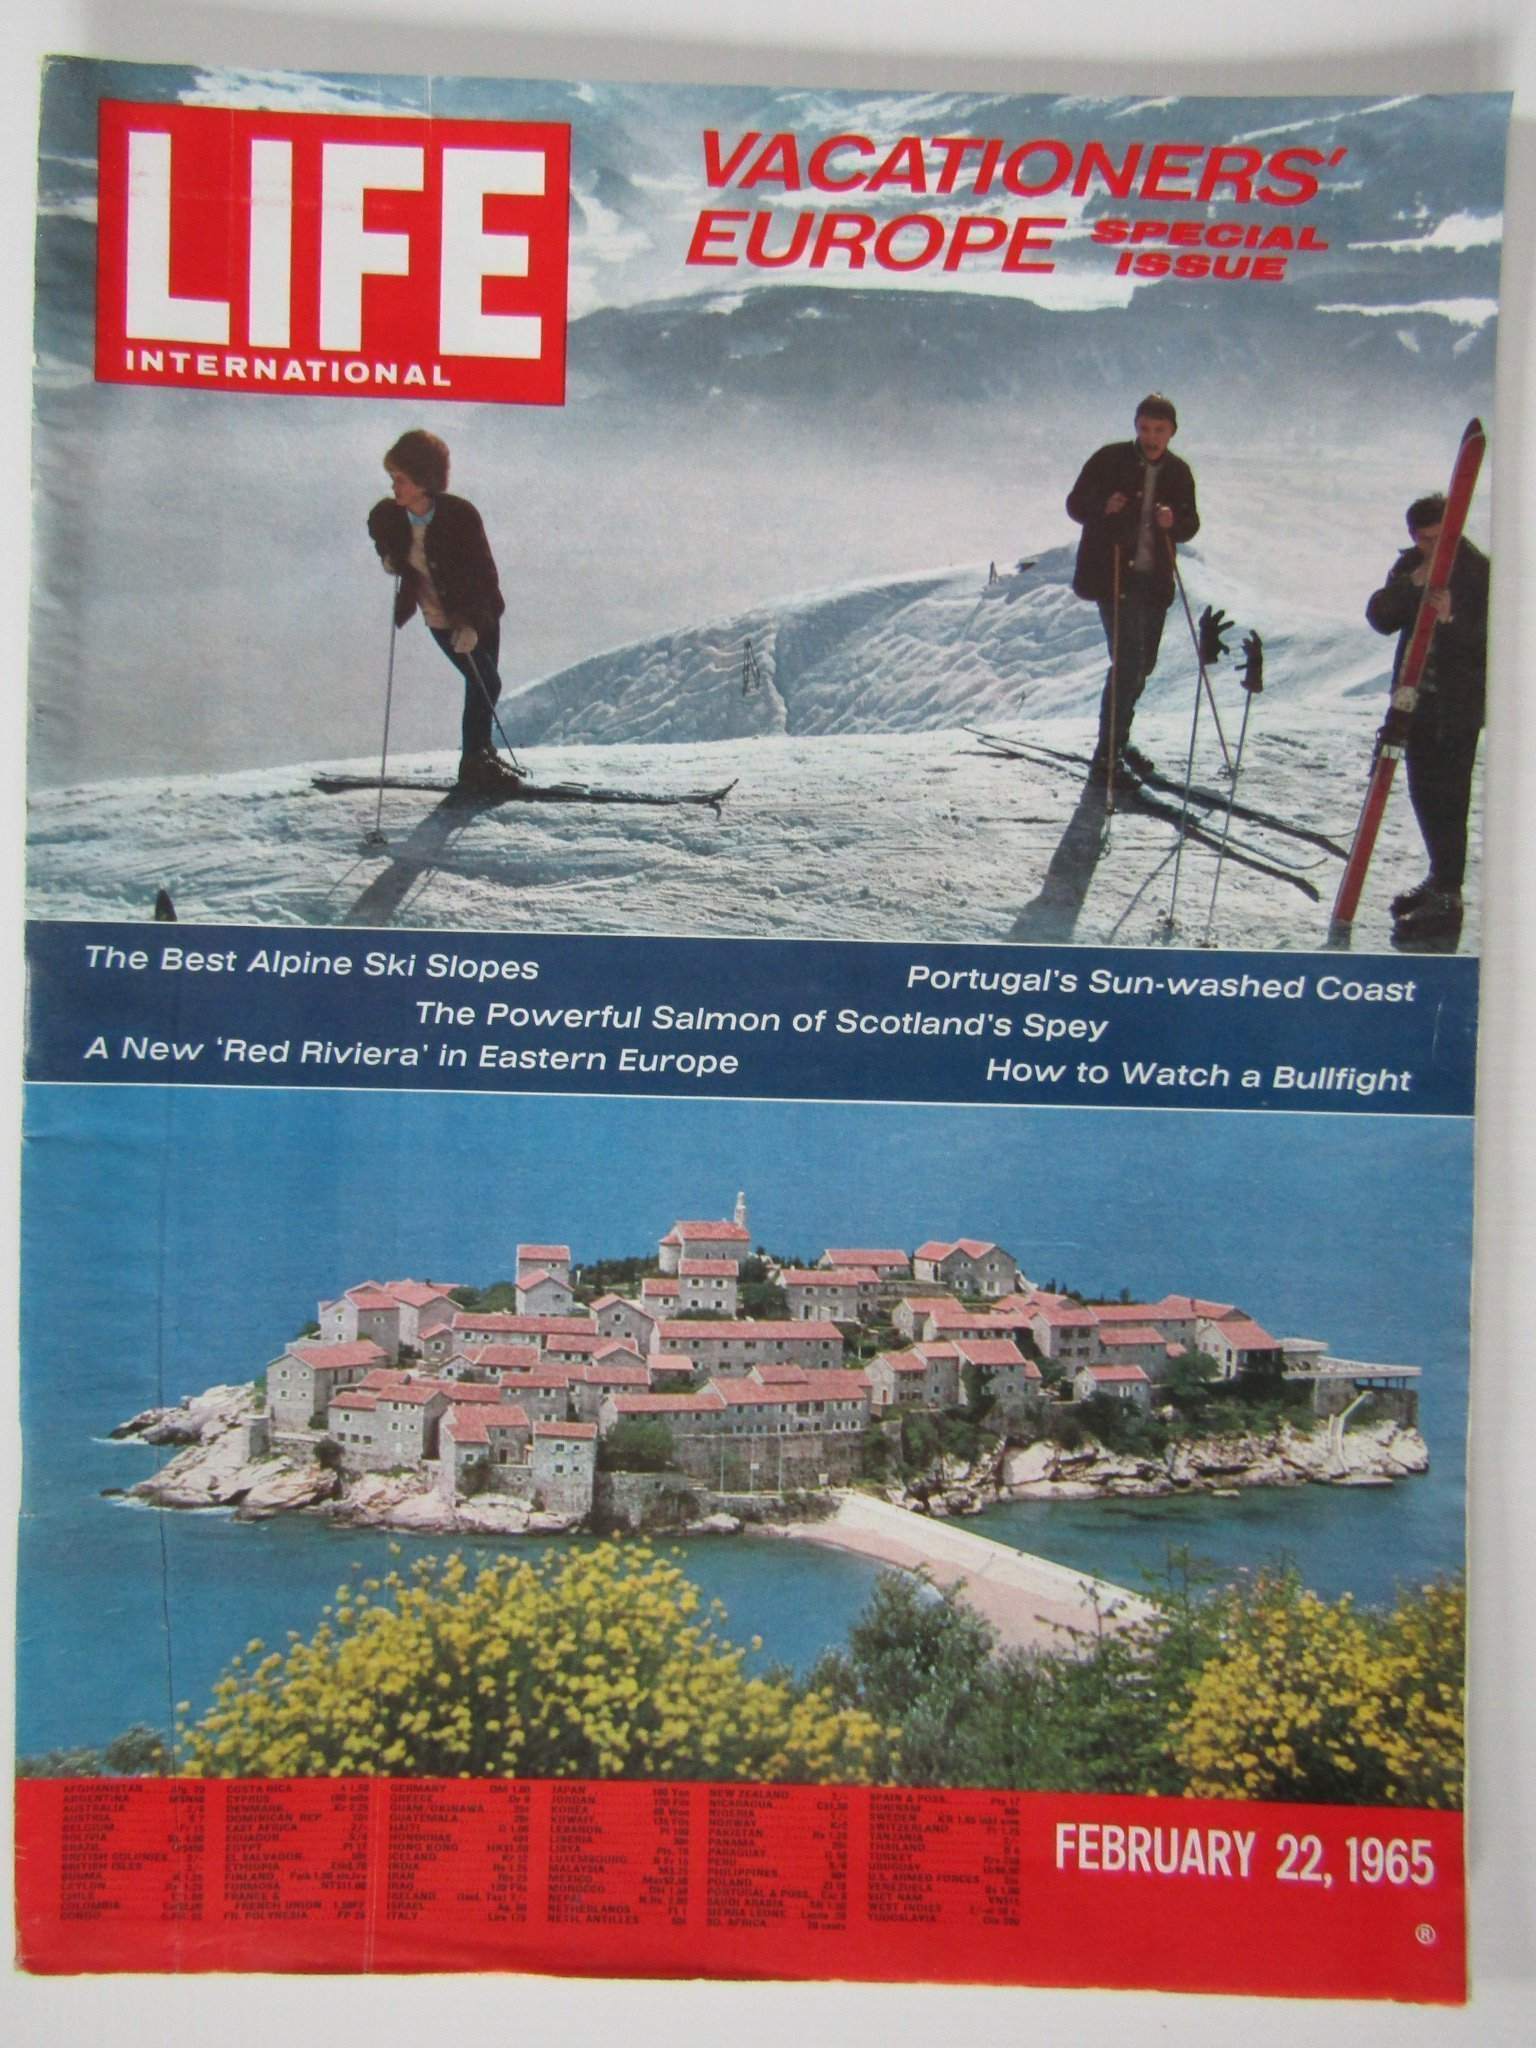 LIFE FEBRUARY 22 1965** VACATIONERS` EUROPE** SEMESTRA I EUROPA